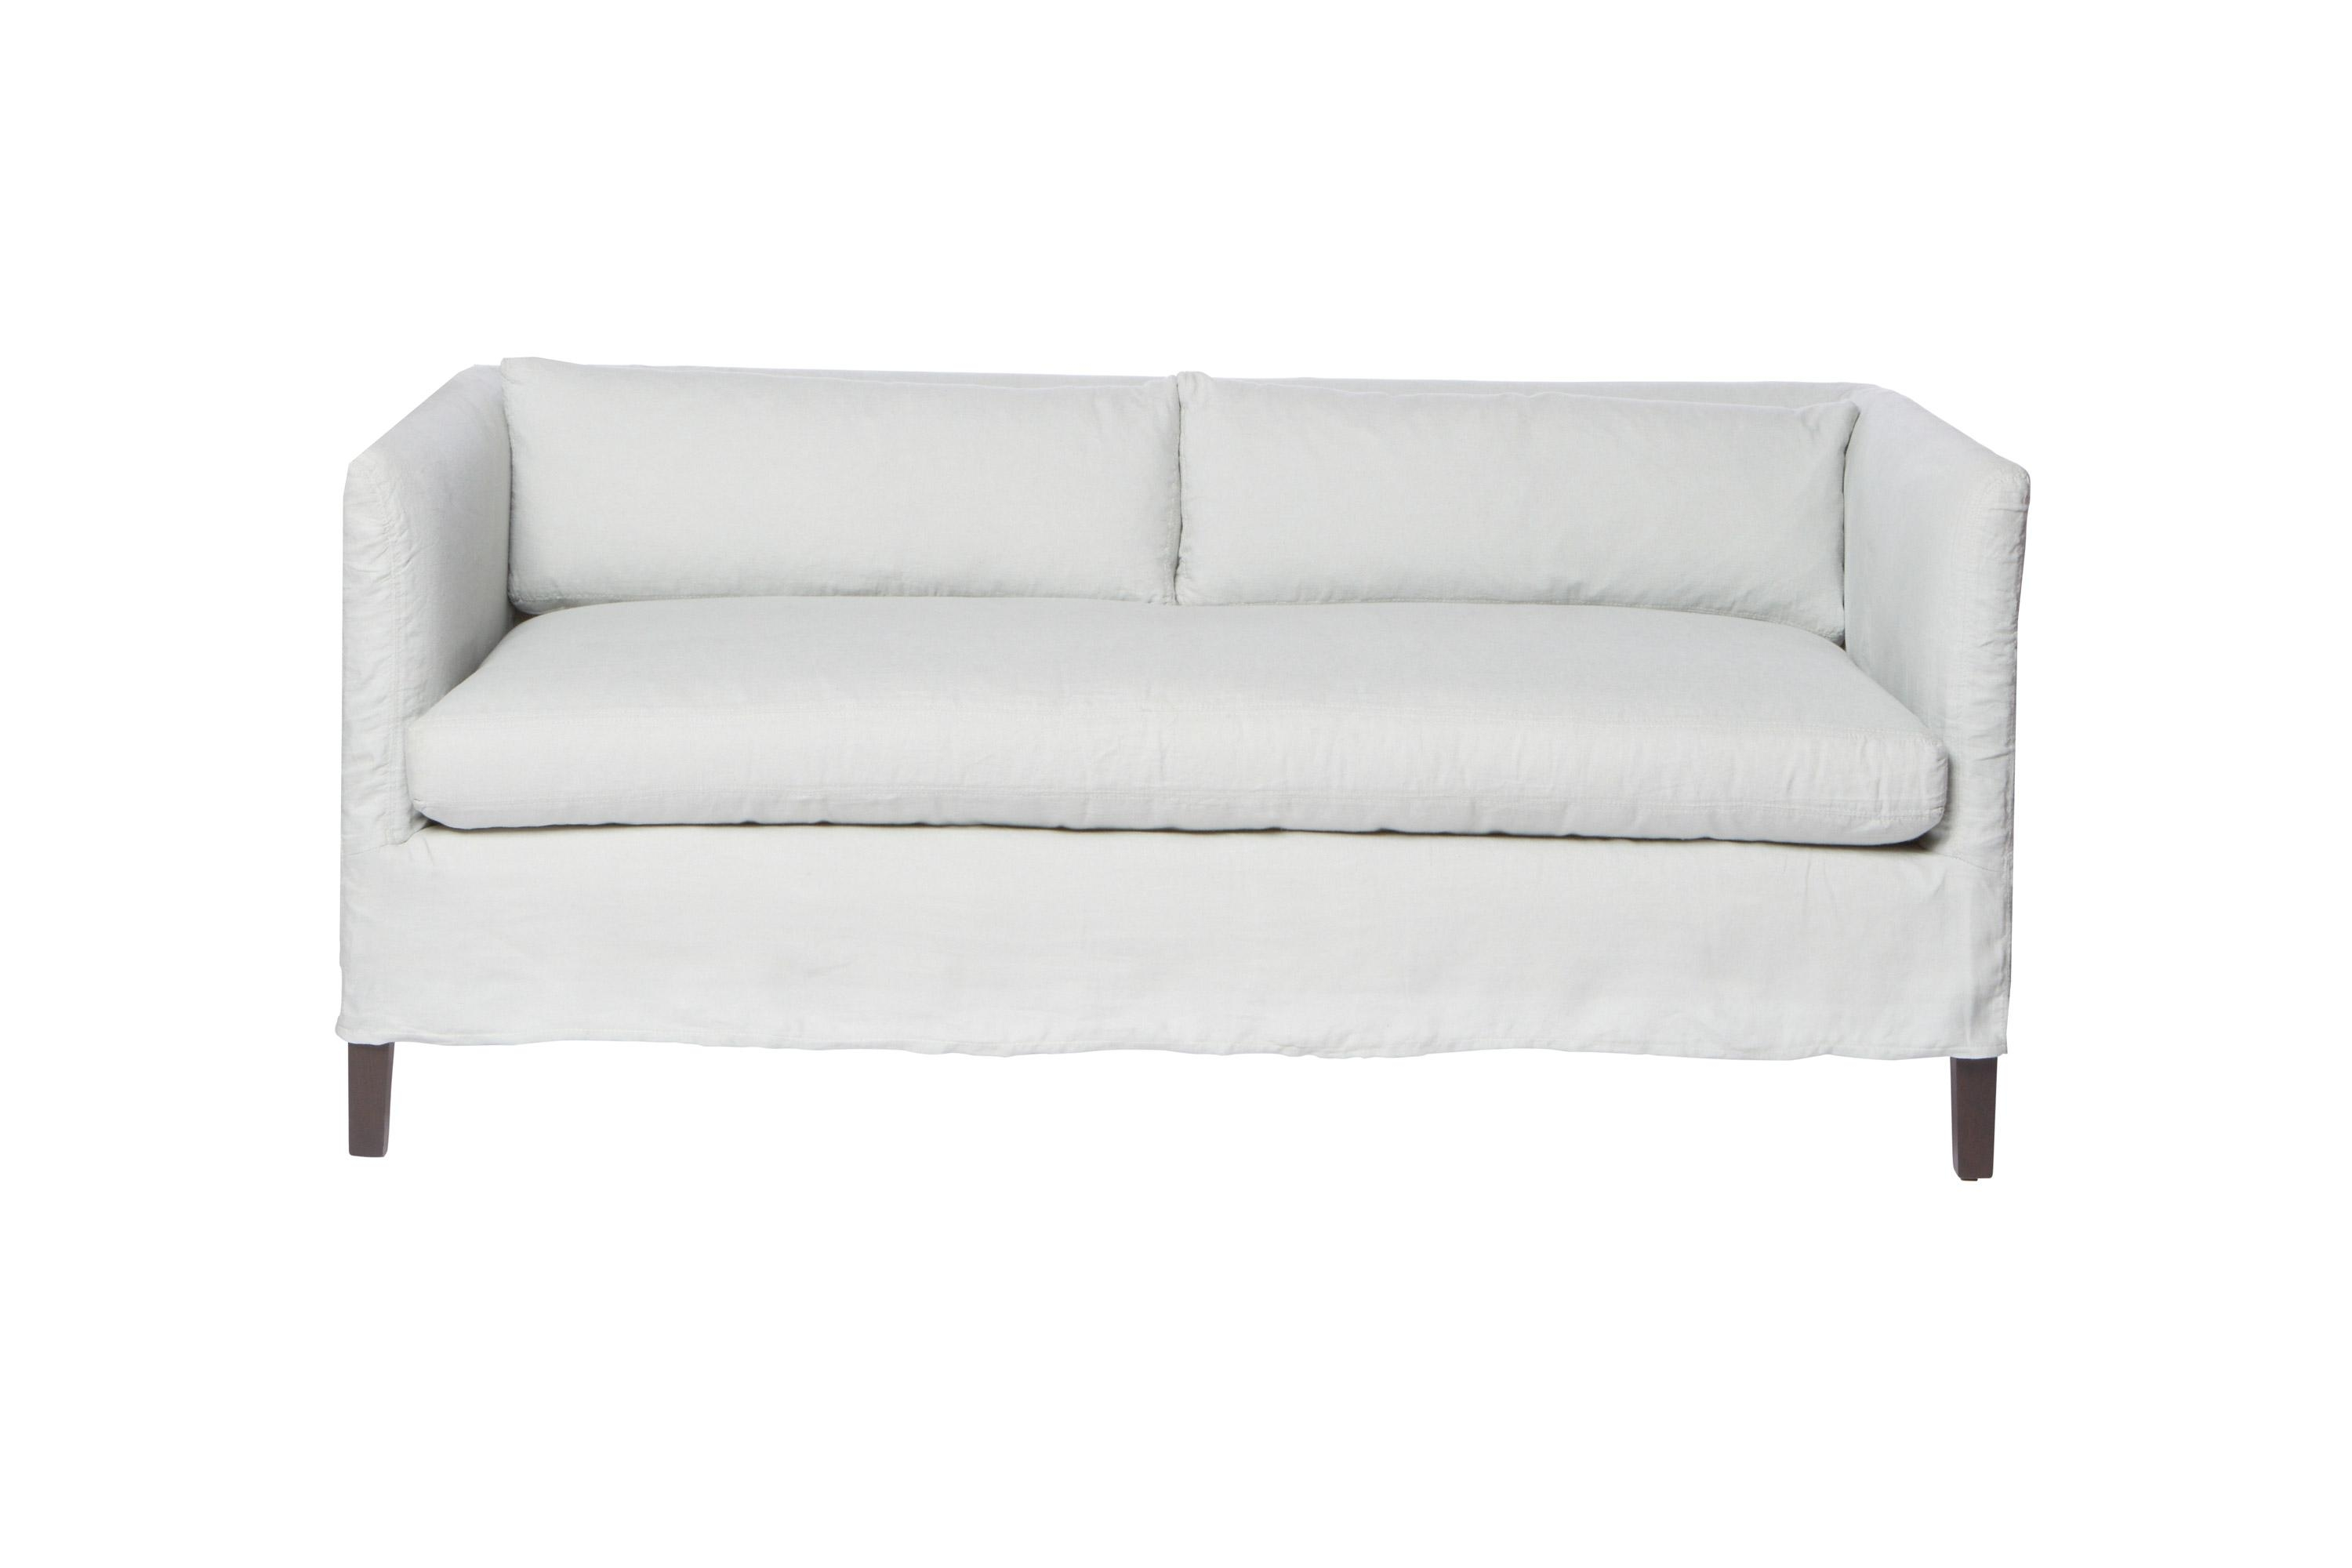 armless sofas old fashioned sofa chairs 20 best ideas slipcovers